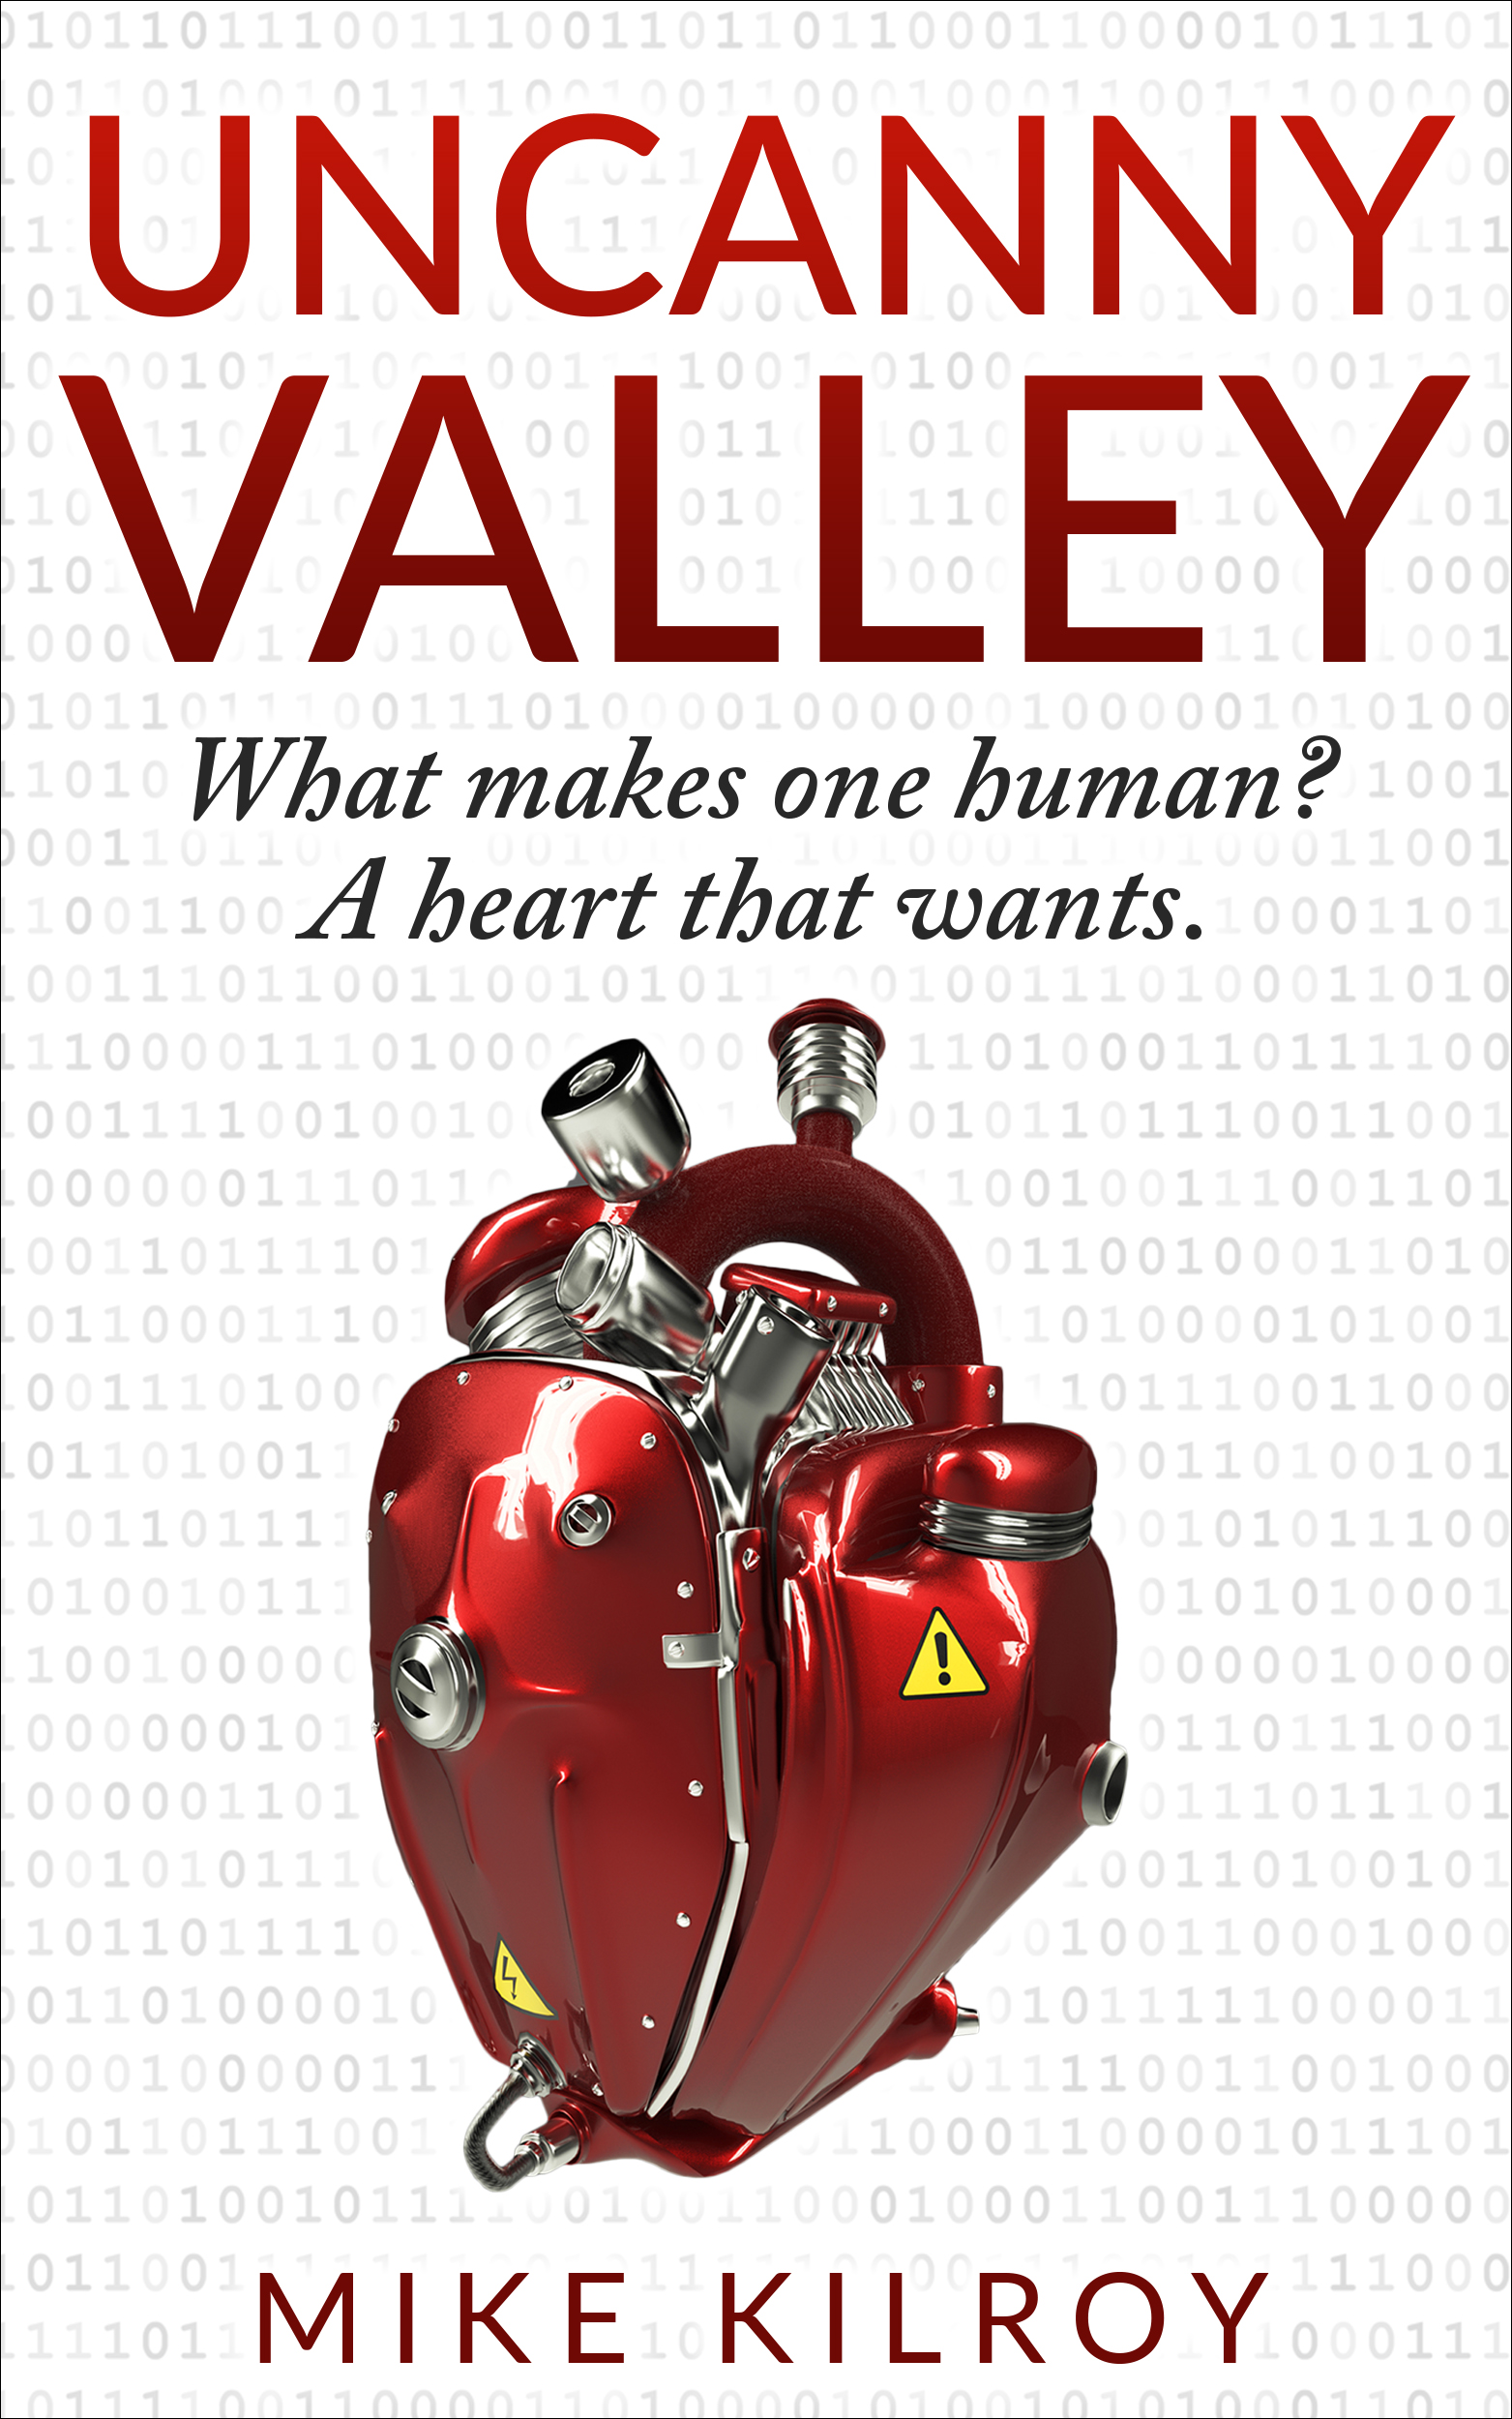 Uncanny Valley: The Heart That Wants